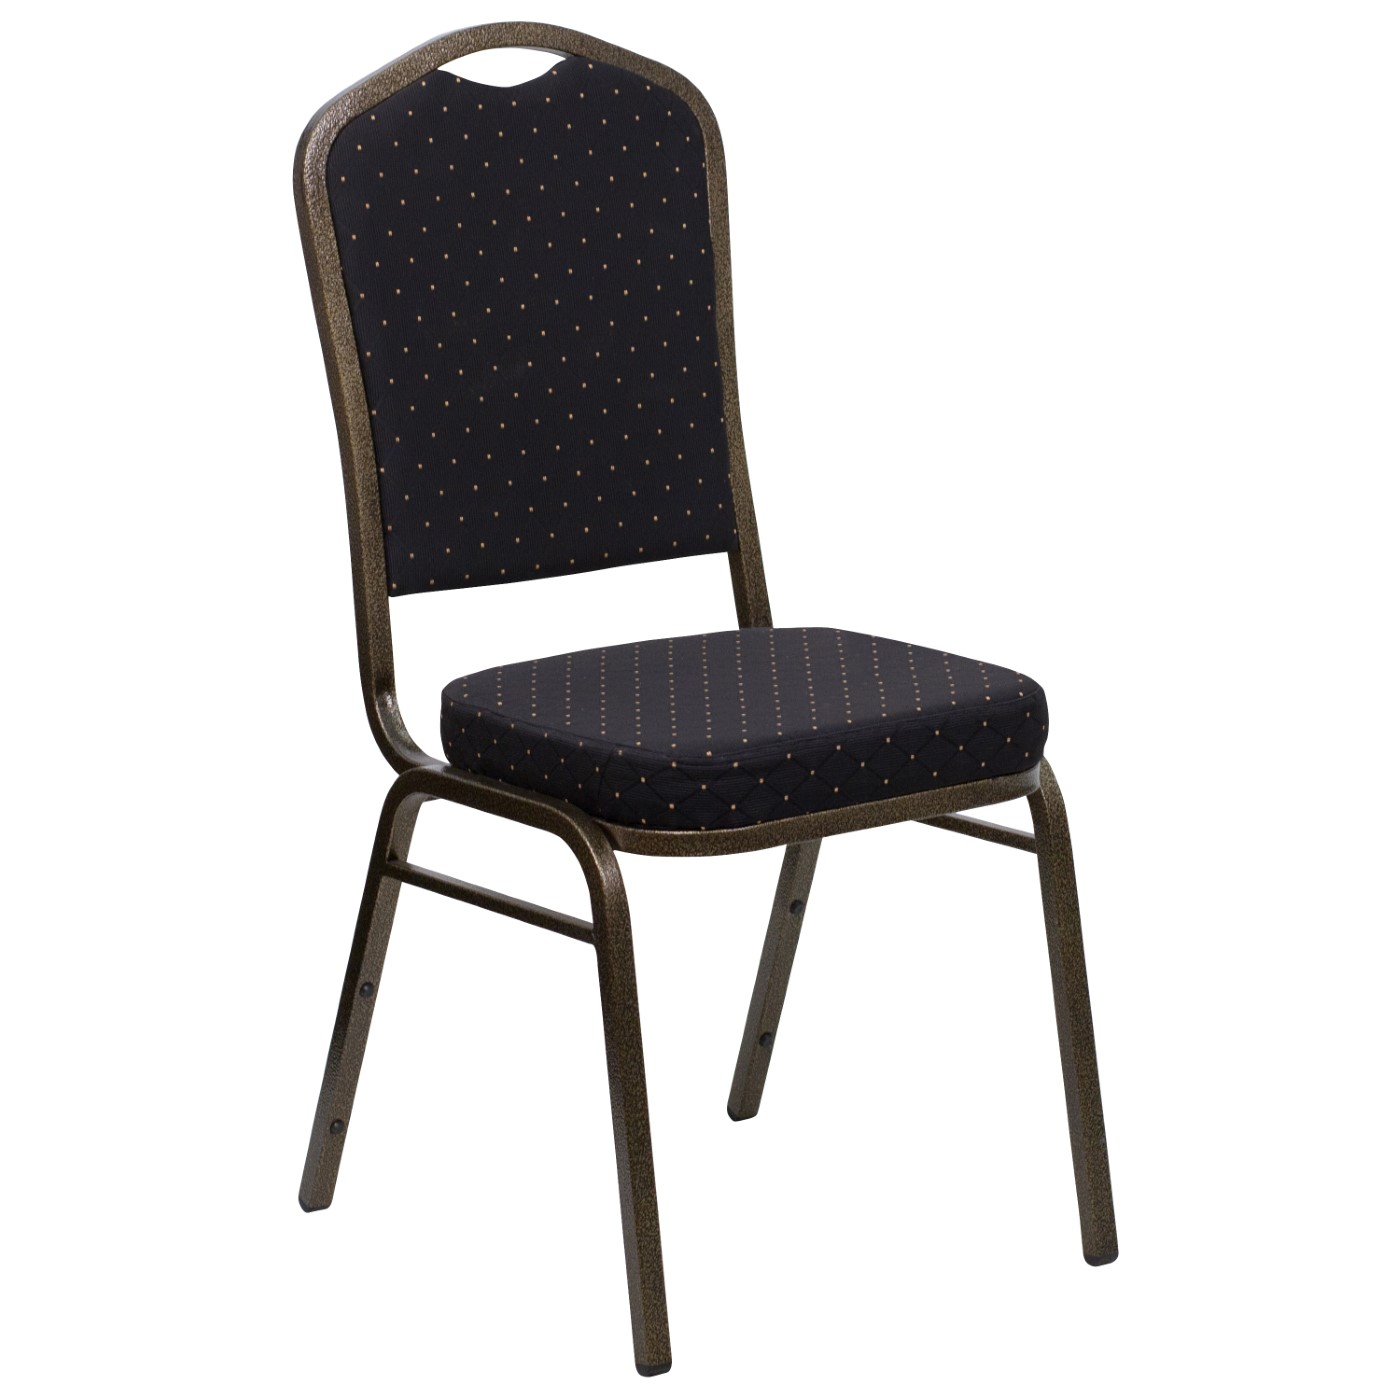 TOUGH ENOUGH Series Crown Back Stacking Banquet Chair in Black Patterned Fabric - Gold Vein Frame